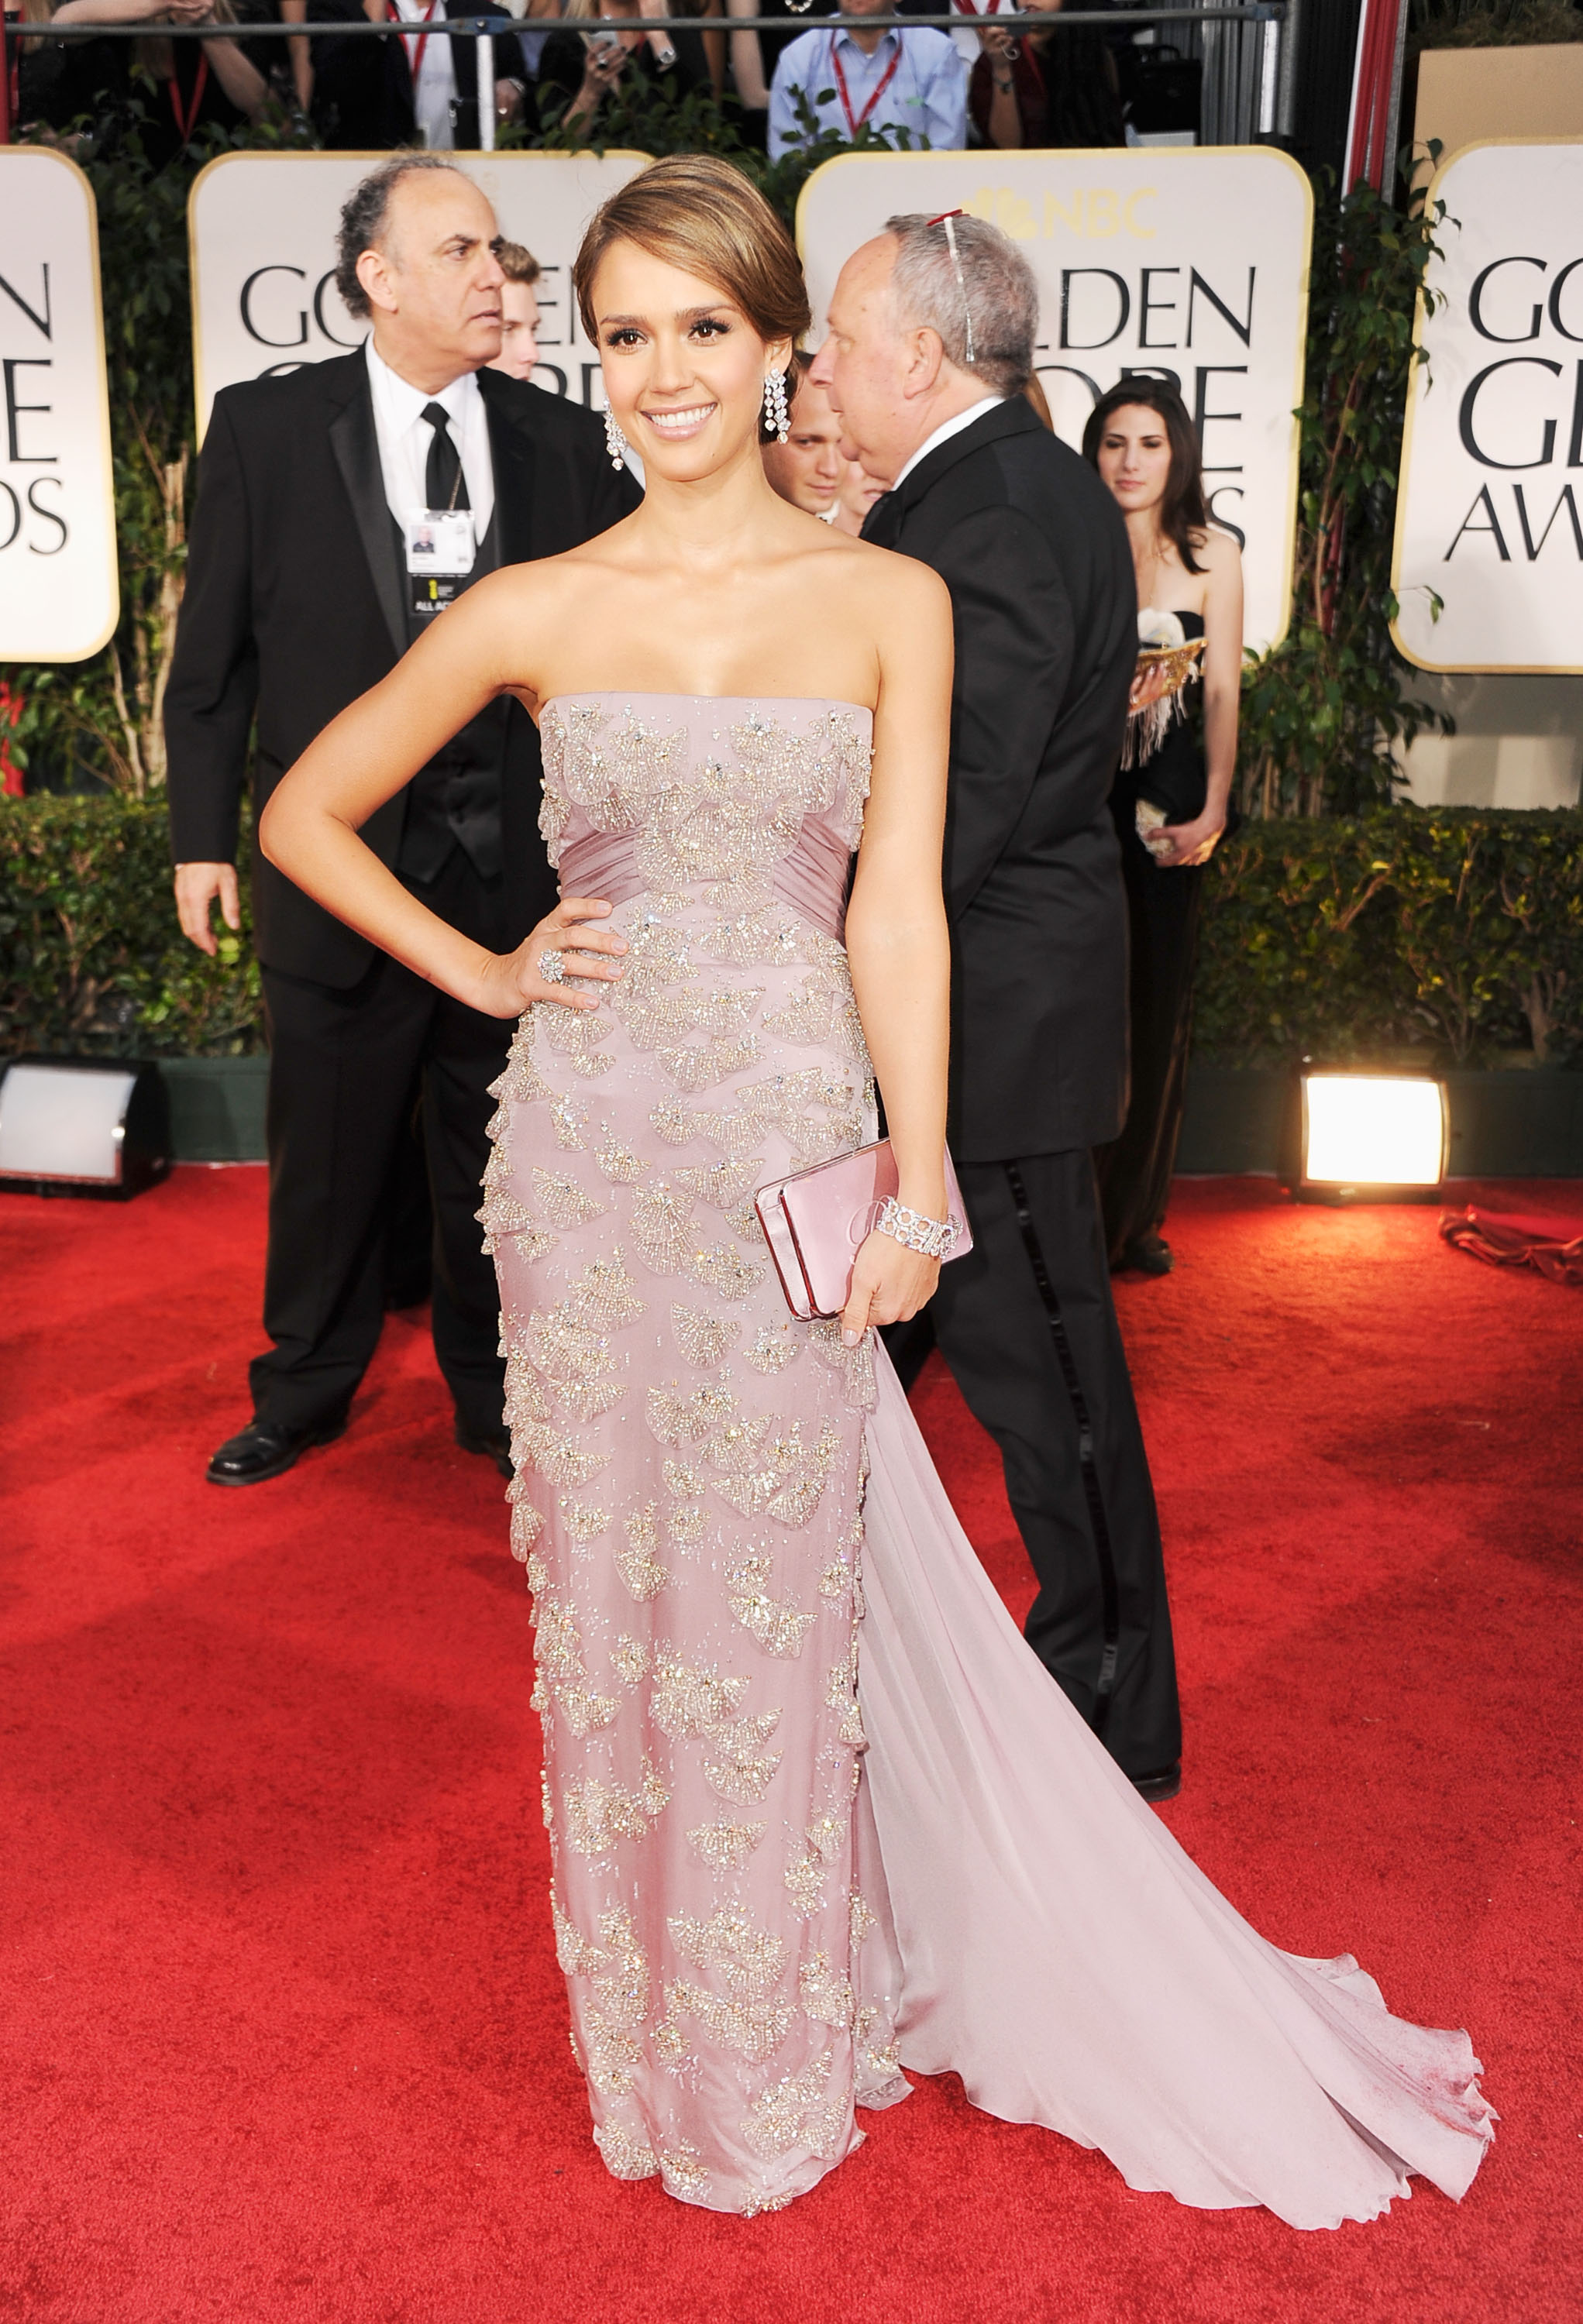 Jessica Alba wearing Gucci at the Golden Globes.